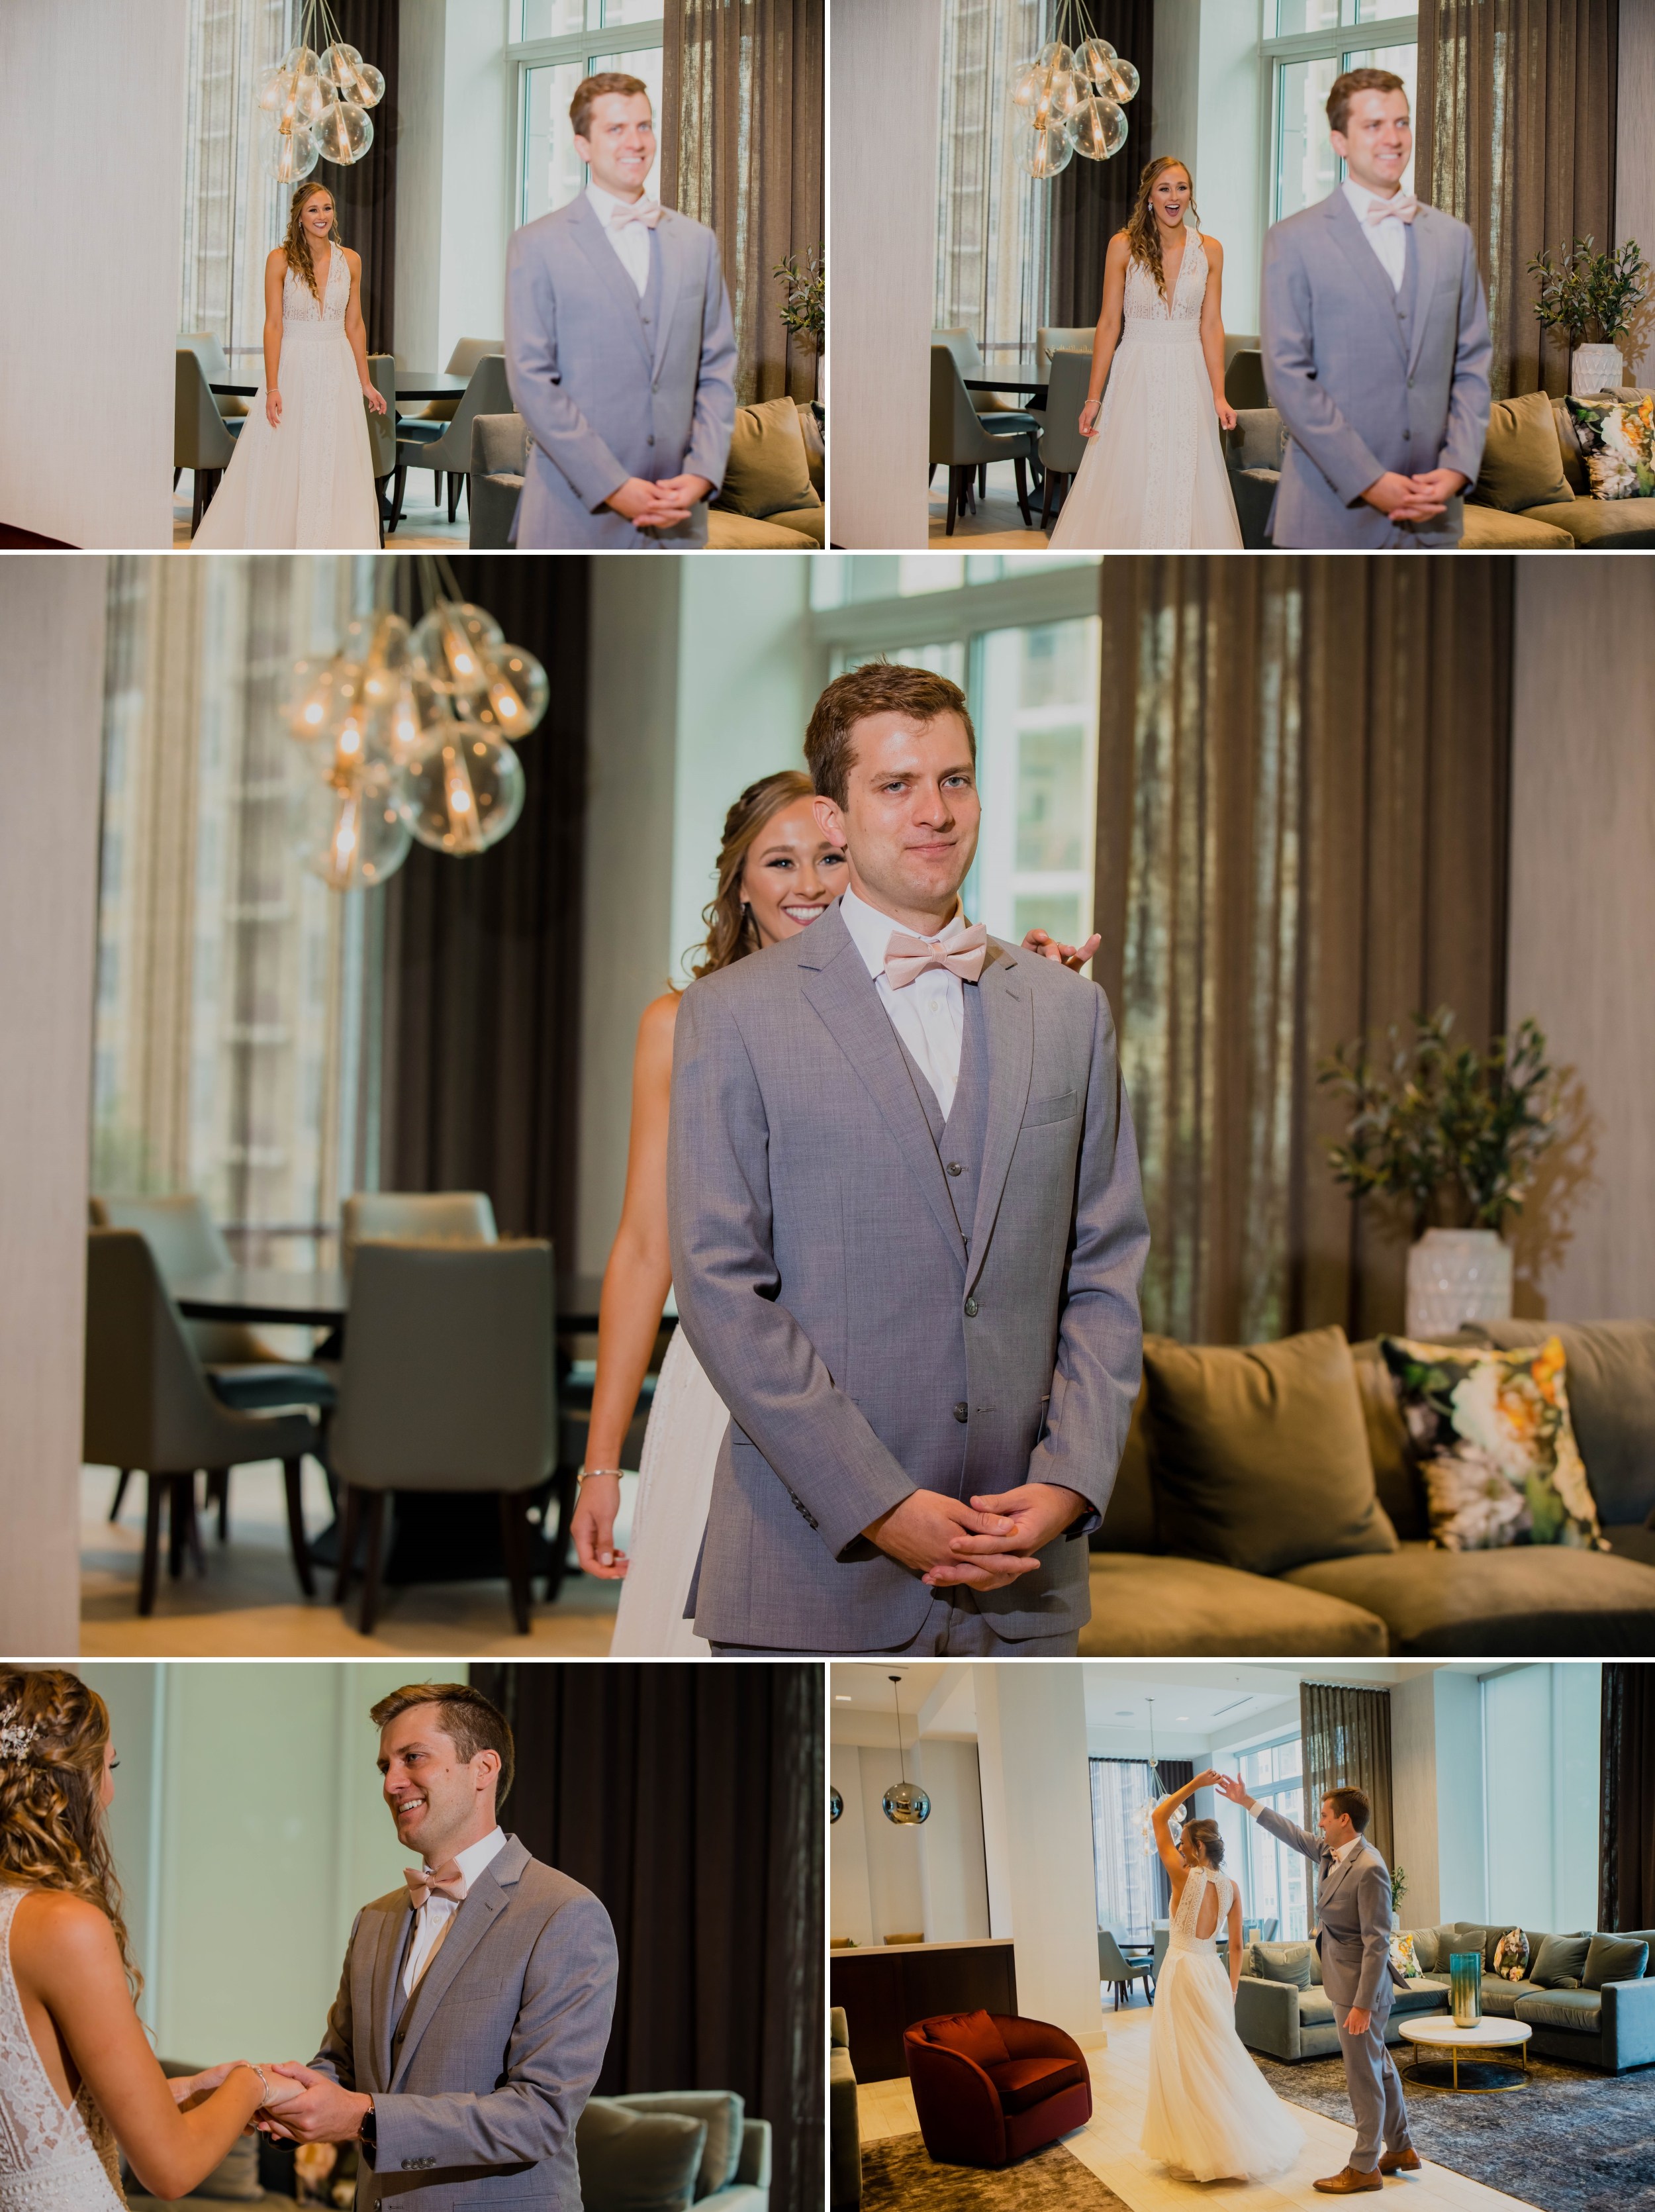 Wedding Piedmont Park - Magnolia Hall - Santy Martinez Photography 14.jpg